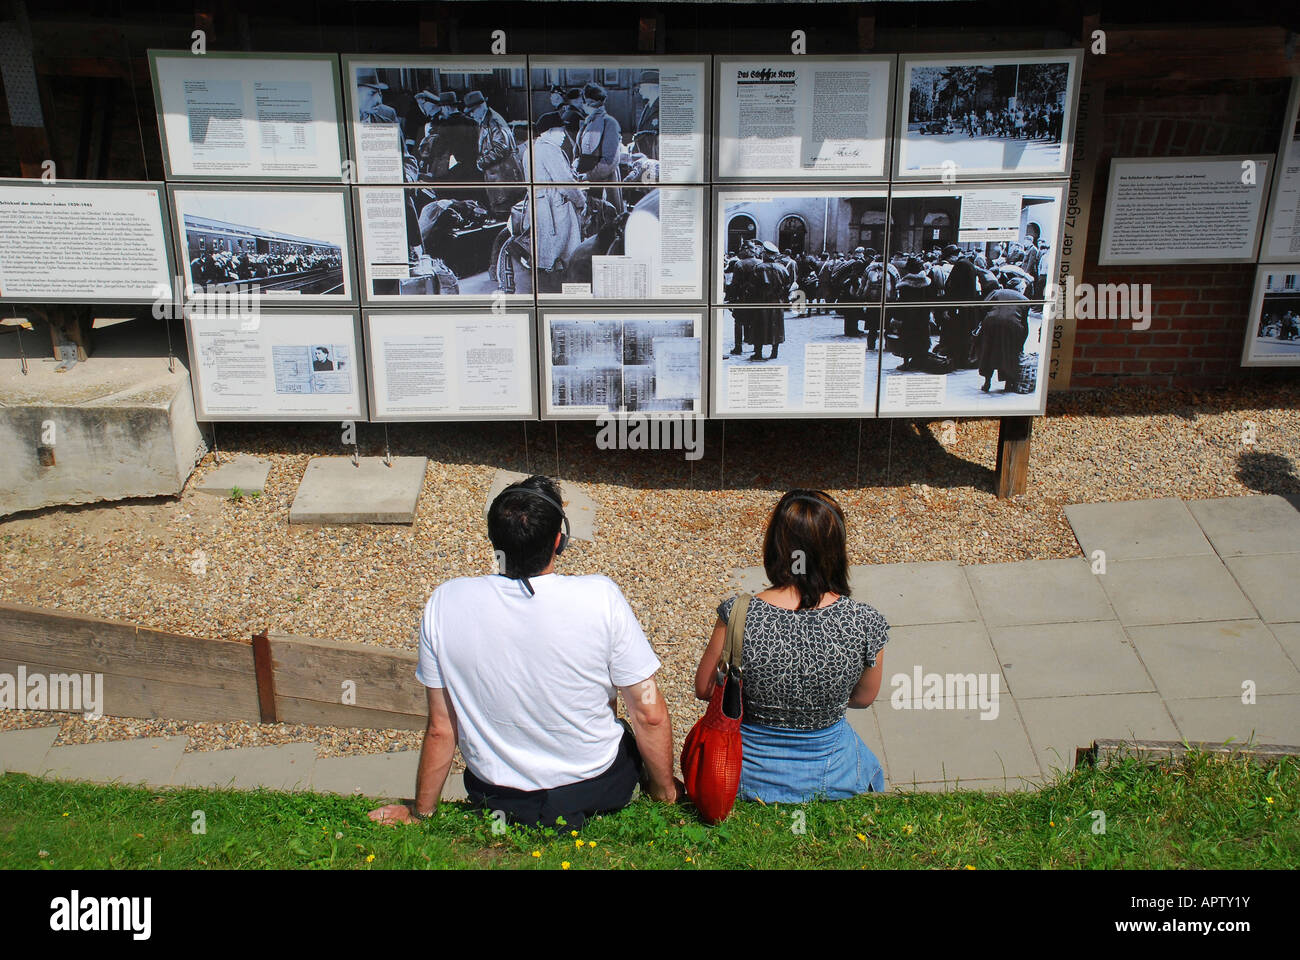 Exhibition topography of terror at the rest of berlin wall niederkirchner street berlin germany stock photo